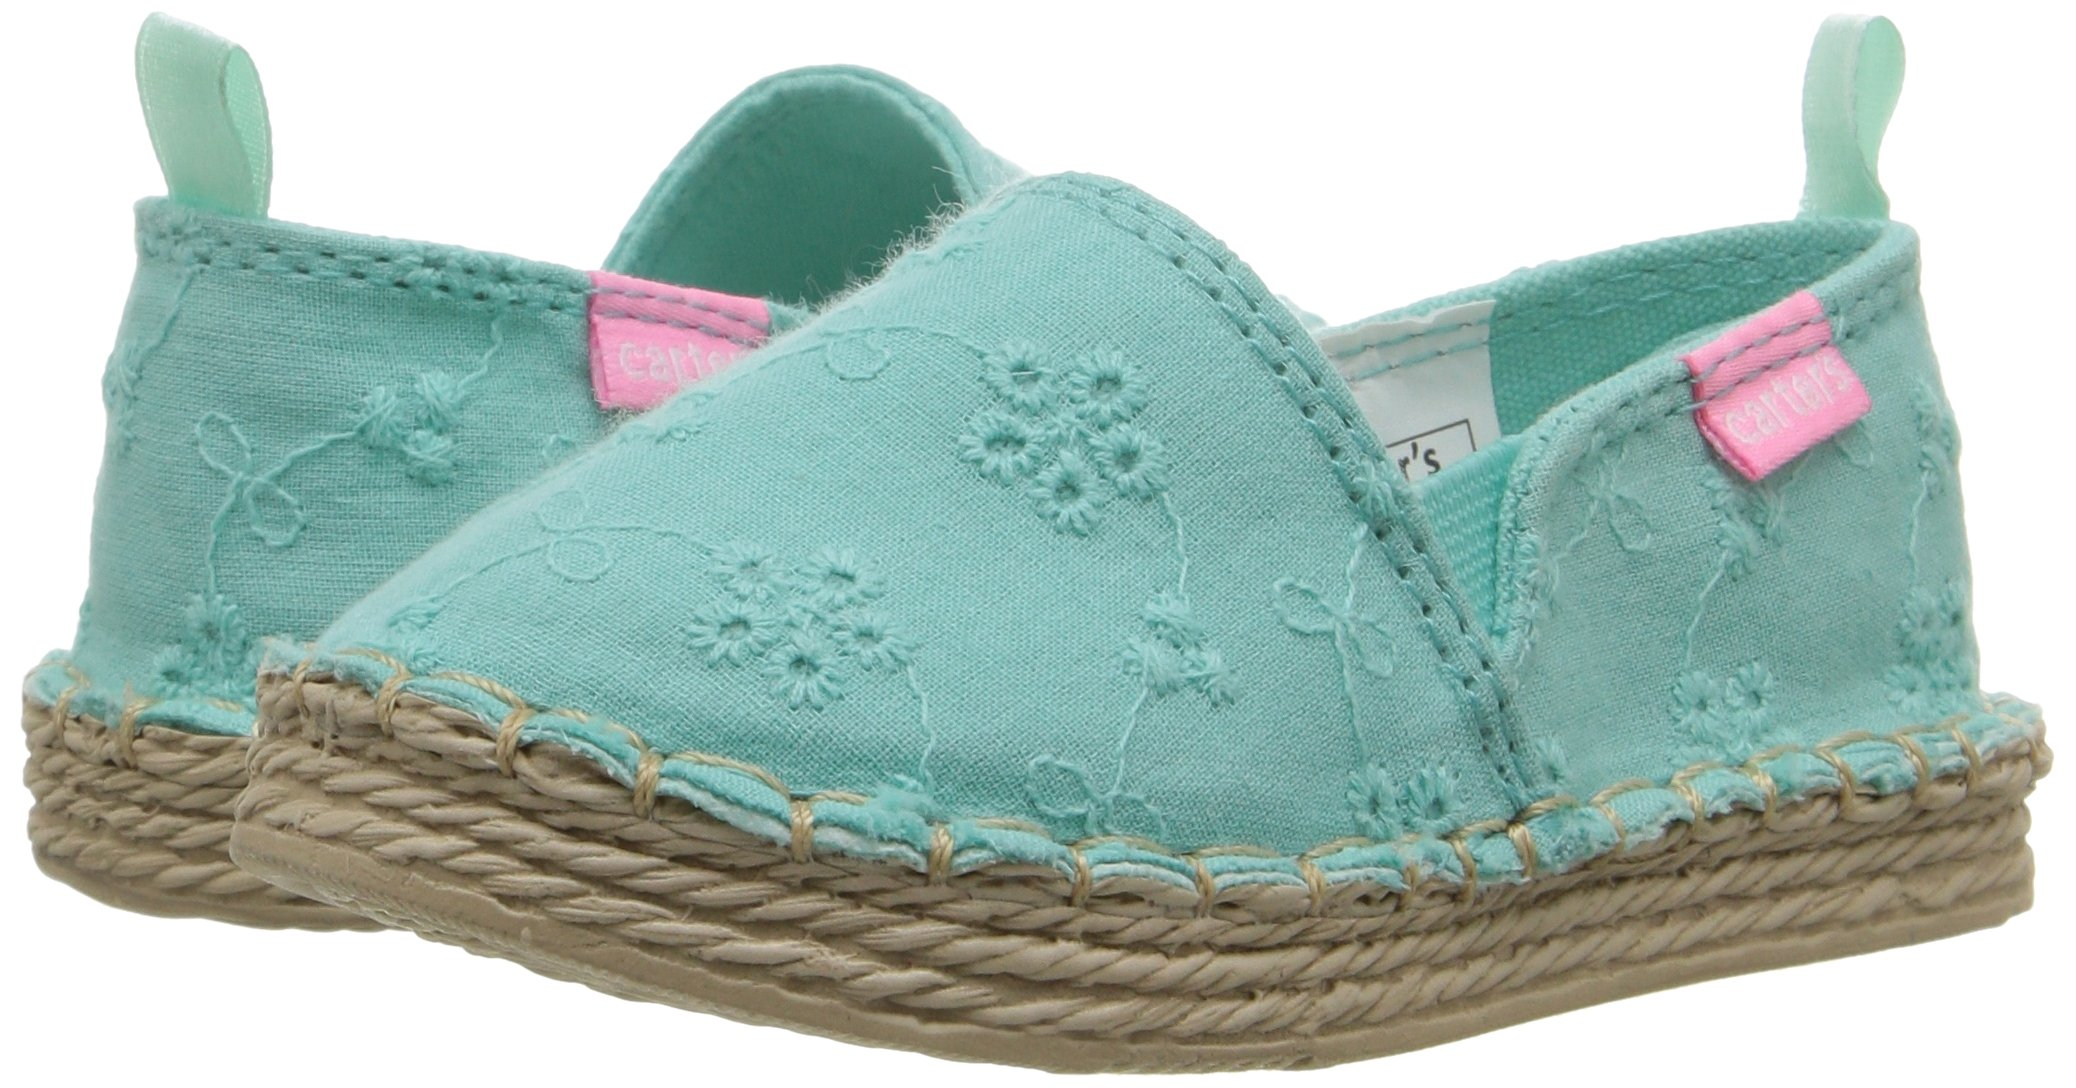 Carter's Astrid Girl's Espadrille Slip-On, Turquoise, 10 M US Toddler by Carter's (Image #6)